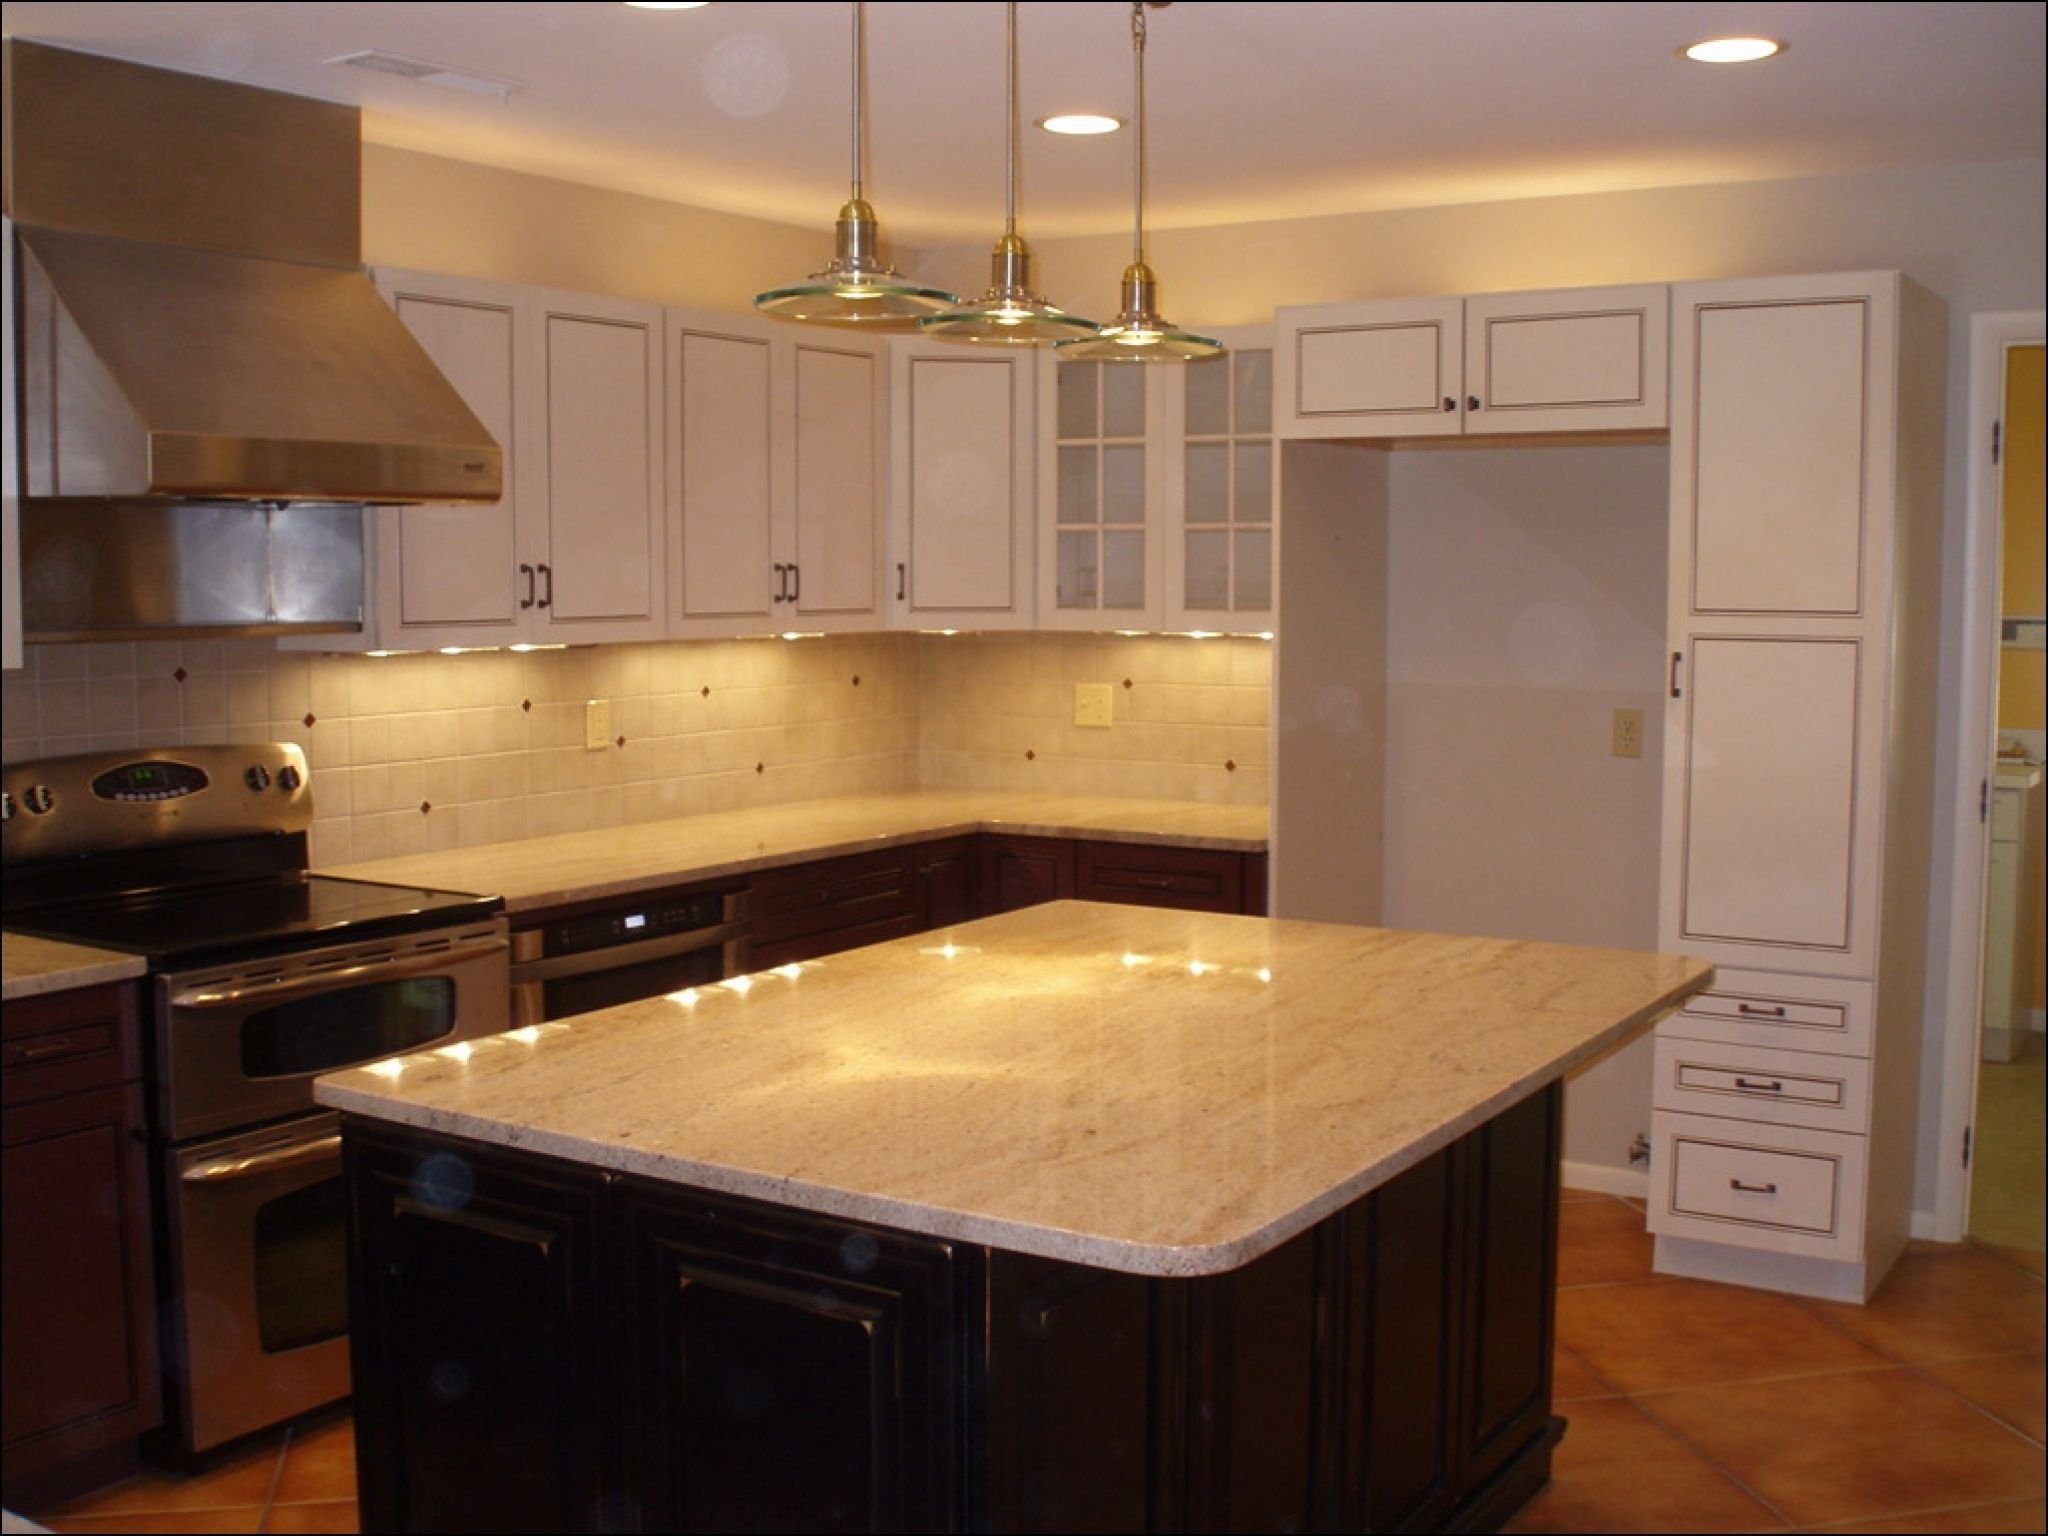 in stock kitchens kitchen wall signs lowes cabinets decor ideas on a budget check more at http